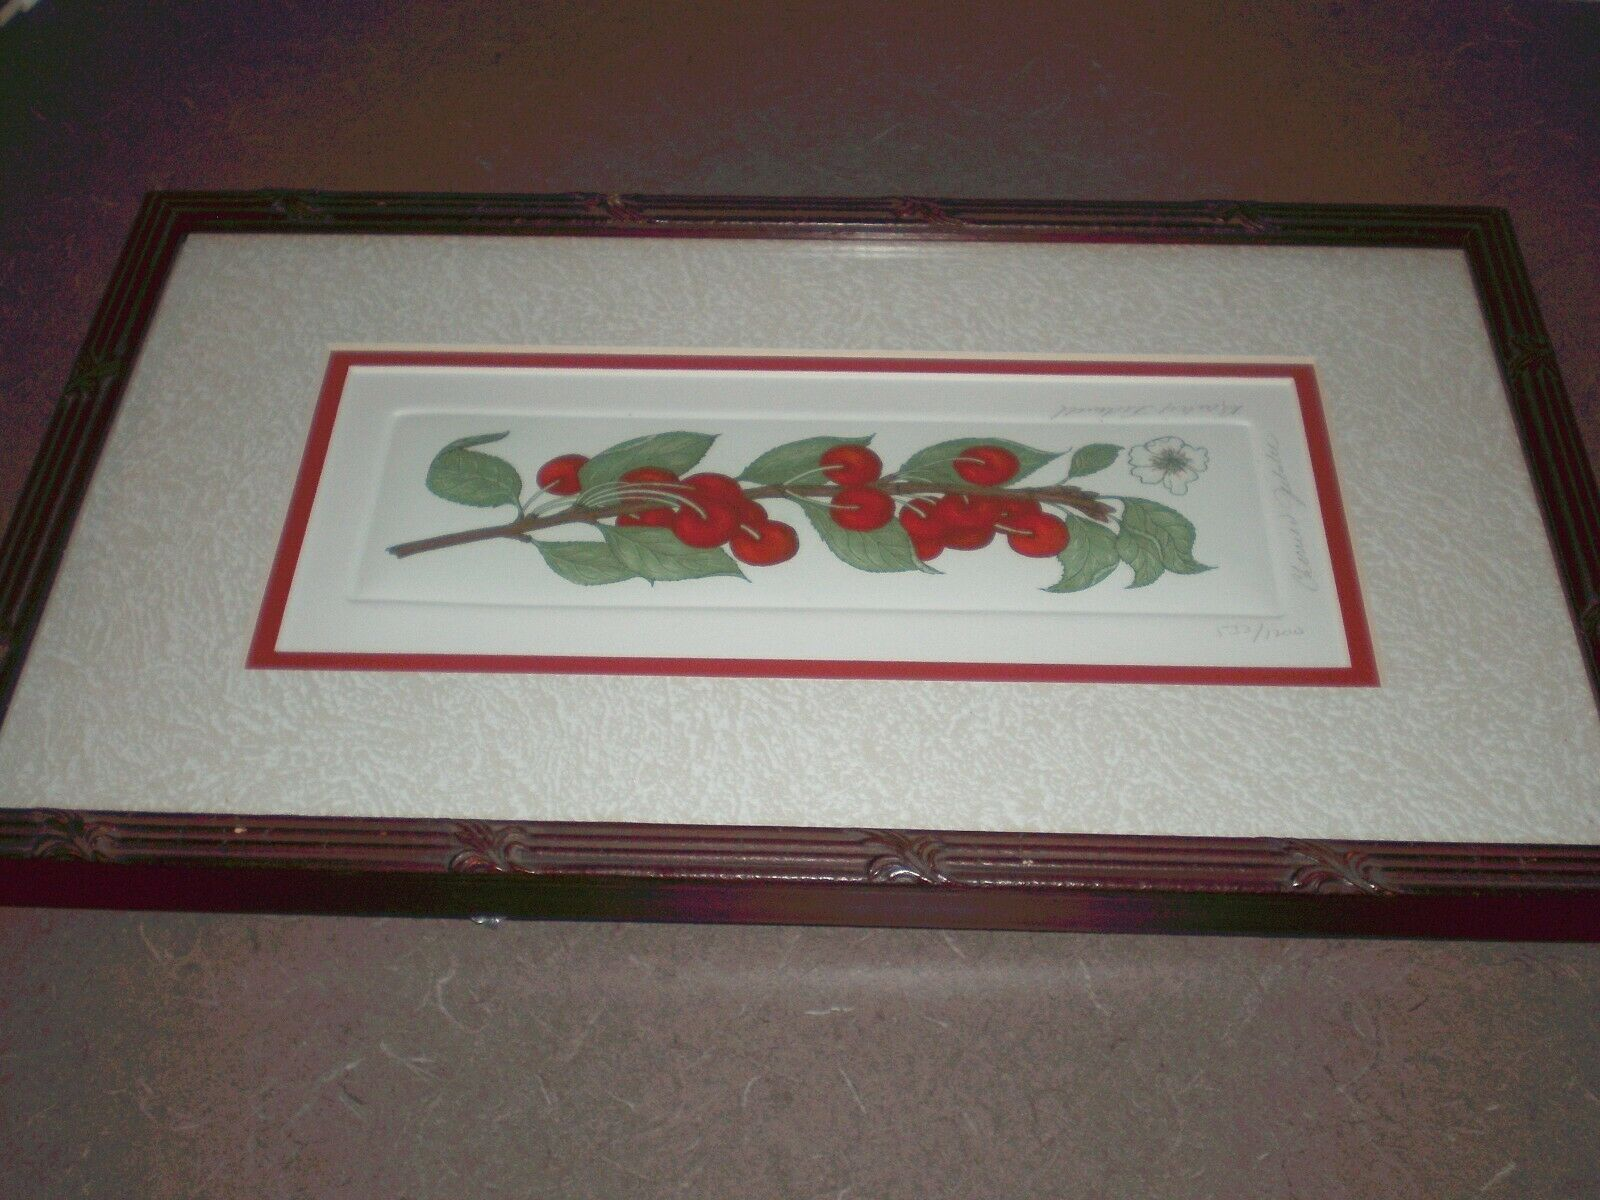 Bailey Tidwell Signed Numbered Framed Art Print CHERRIES JUBILEE CHERRY PIC - $18.95